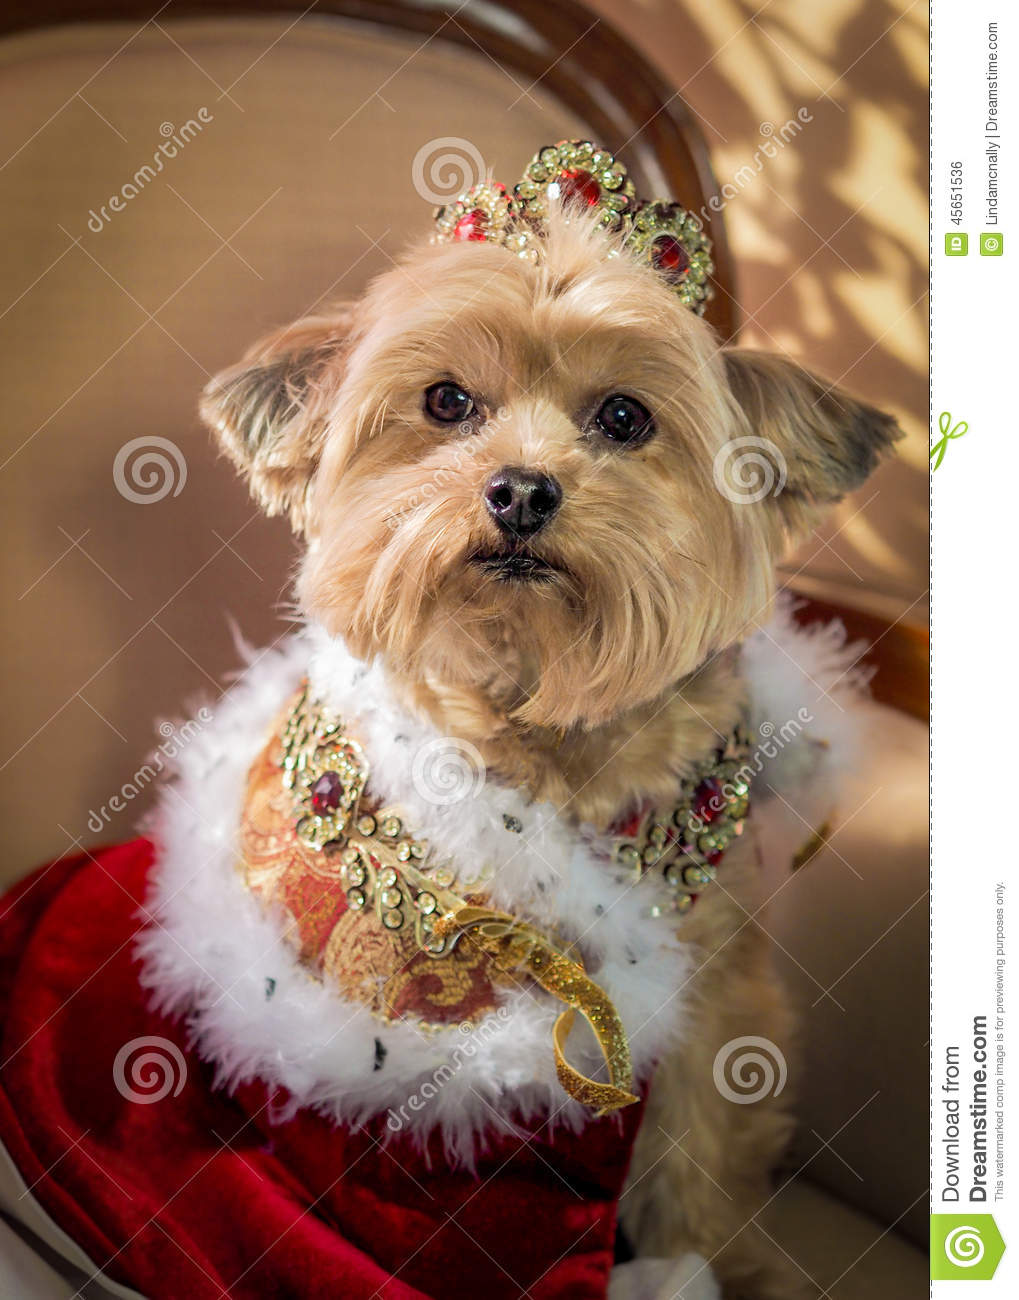 Royal Dog Princess Doggie